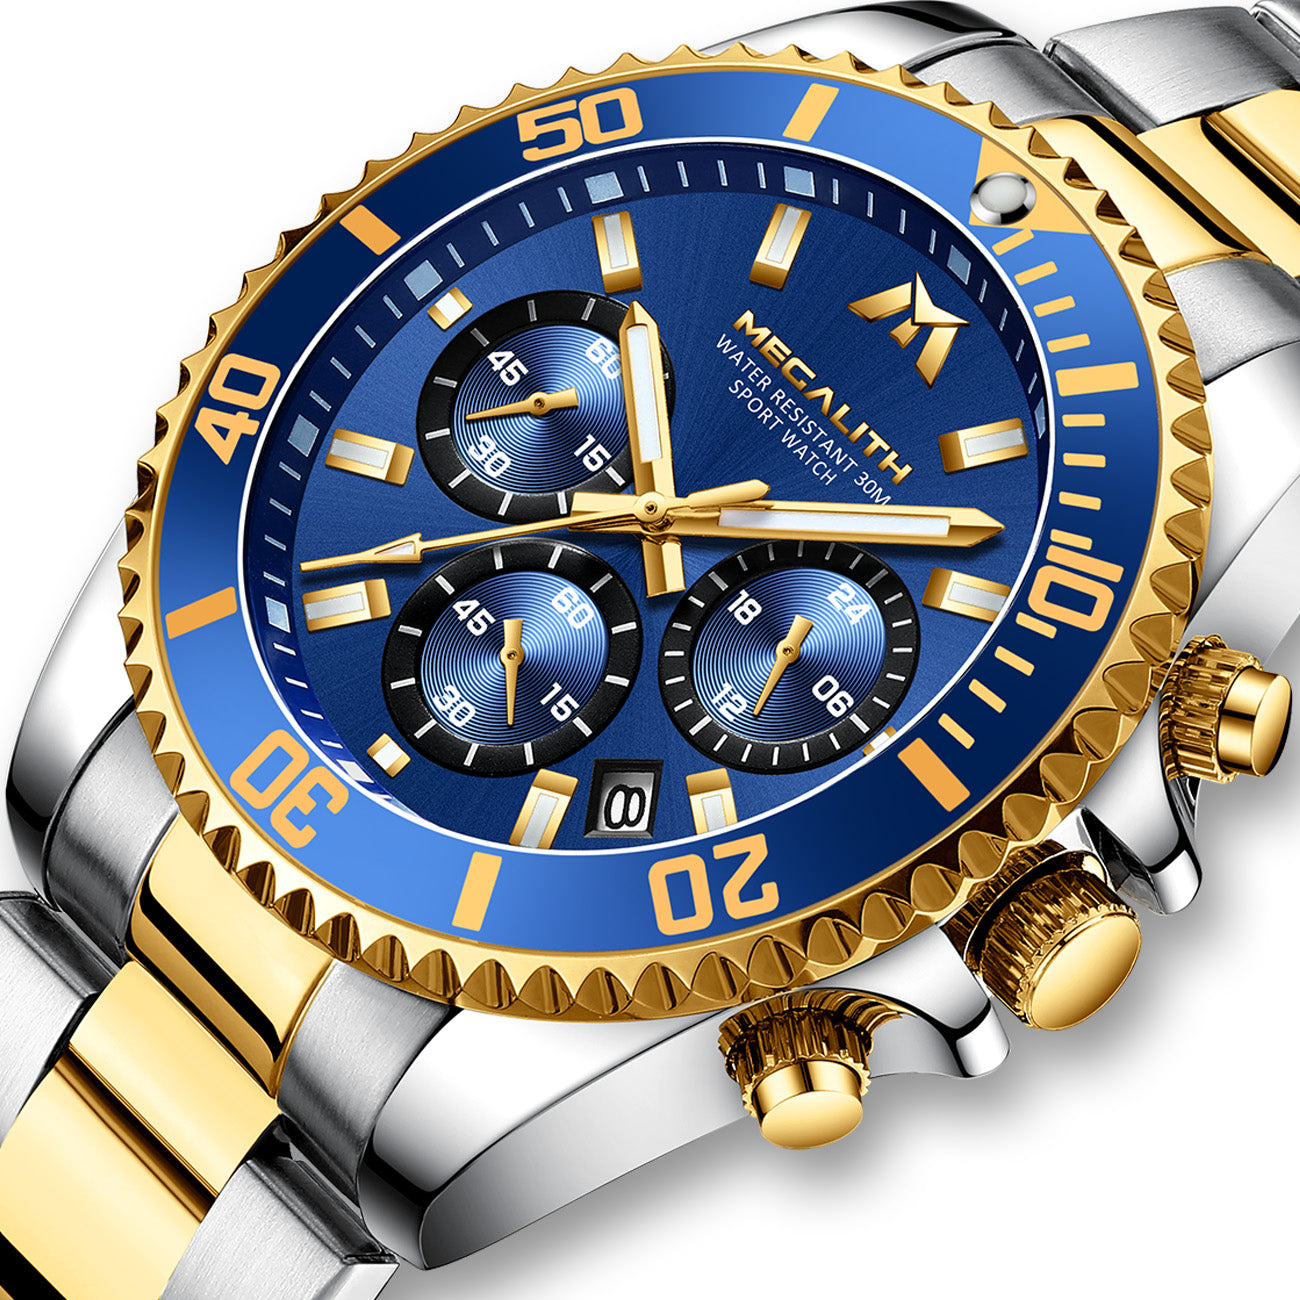 MEGALITH Mens Watches Men Designer Chronograph Blue Gold Waterproof Luminous Stainless Steel Wrist Watch Military Large Date Analogue Watches for Men-megalith watch